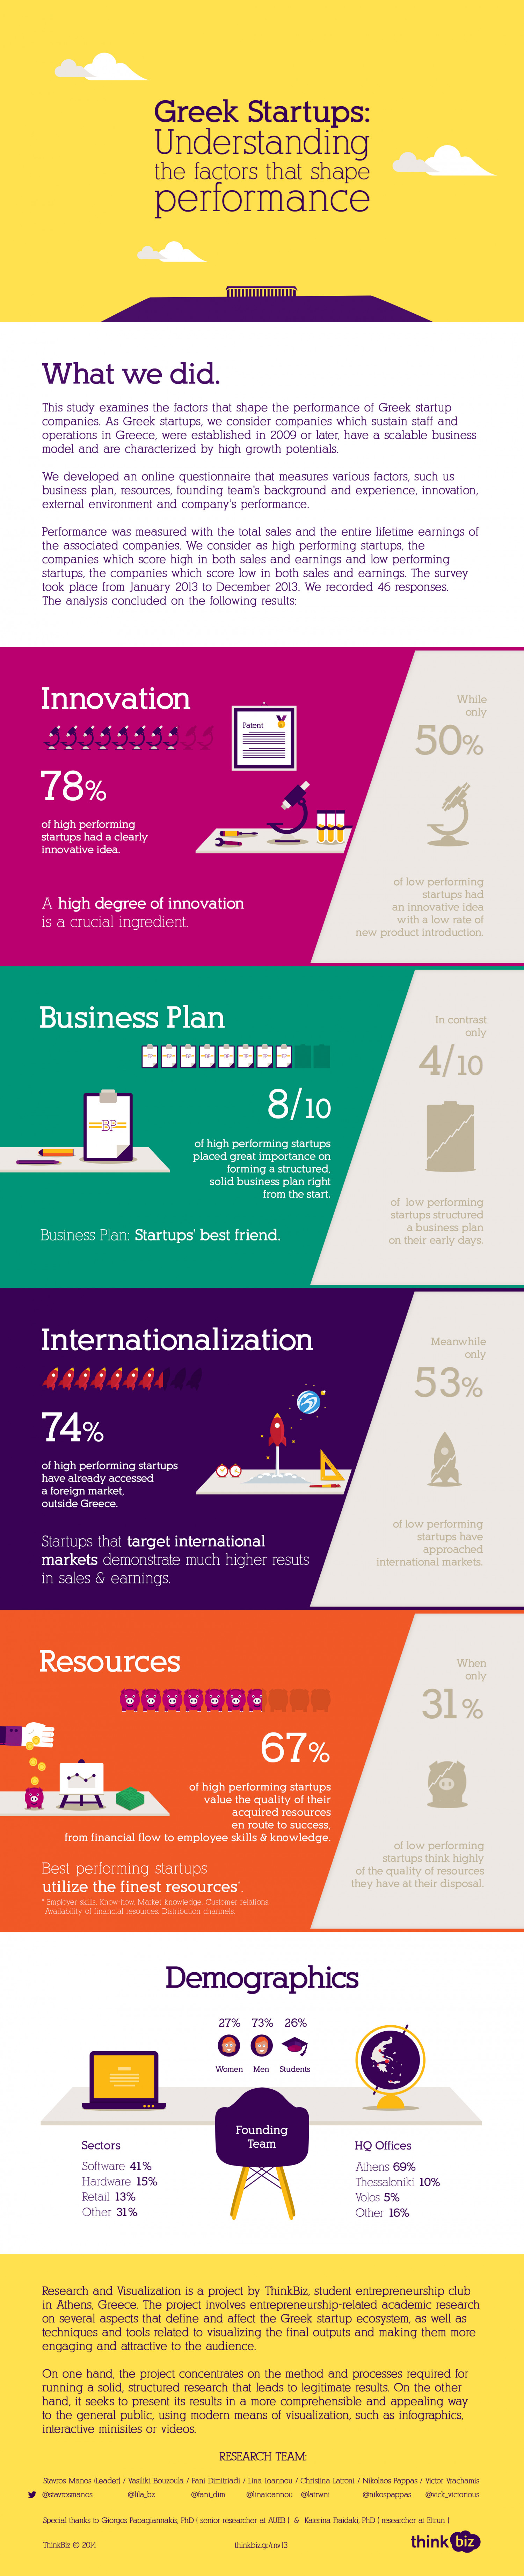 Greek Startups: Understanding the Factors That Shape Their Performance Infographic